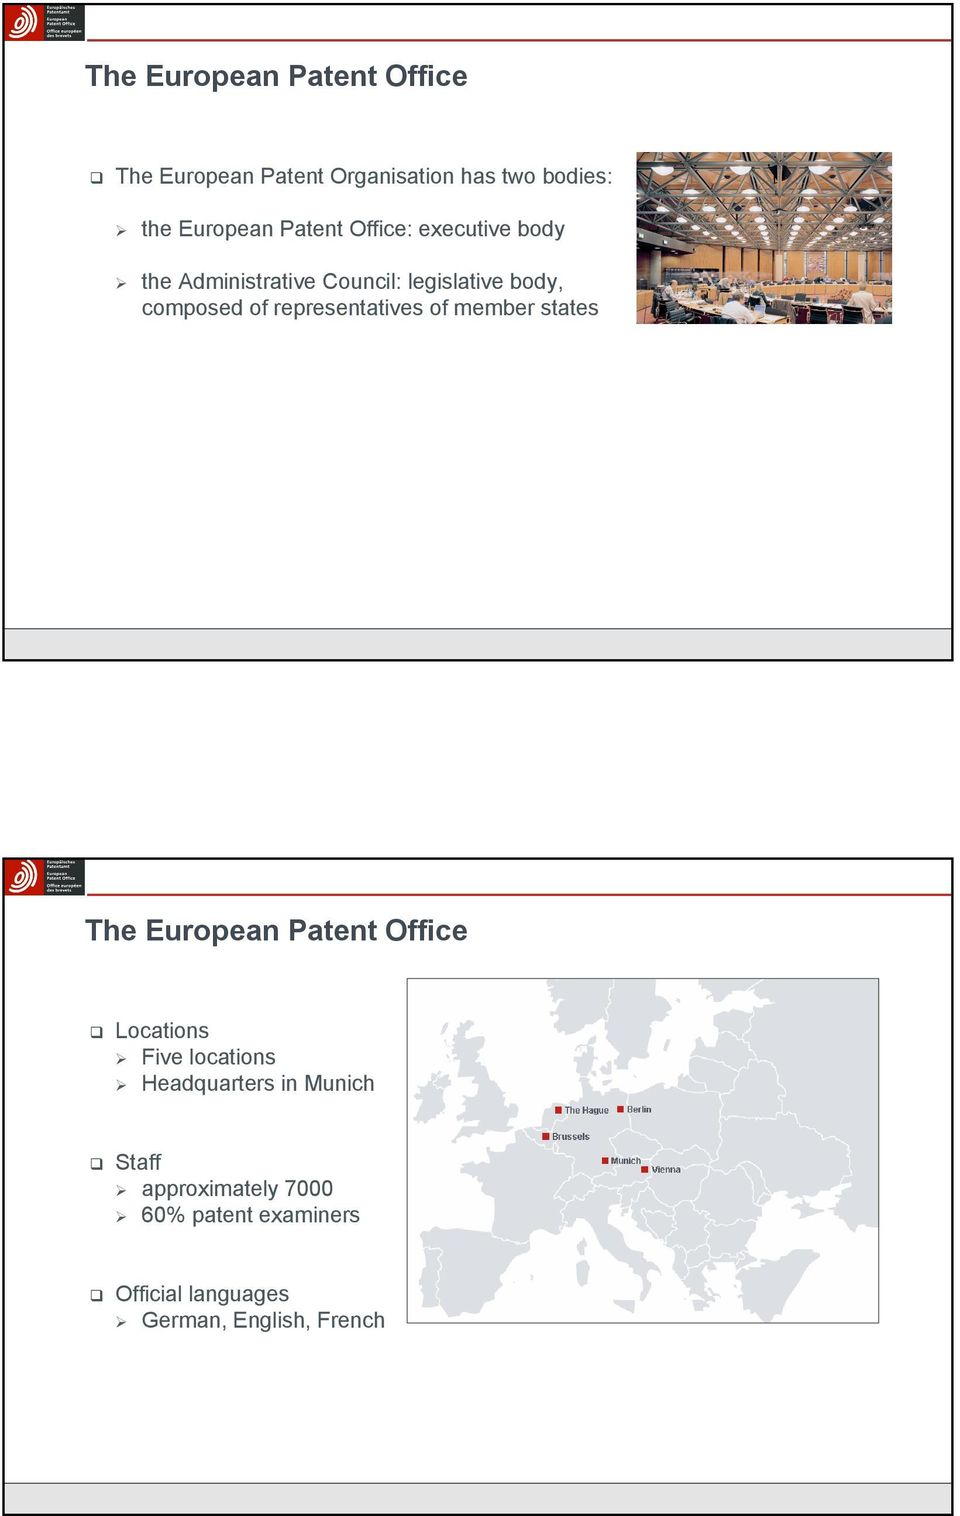 representatives of member states The European Patent Office Locations Five locations